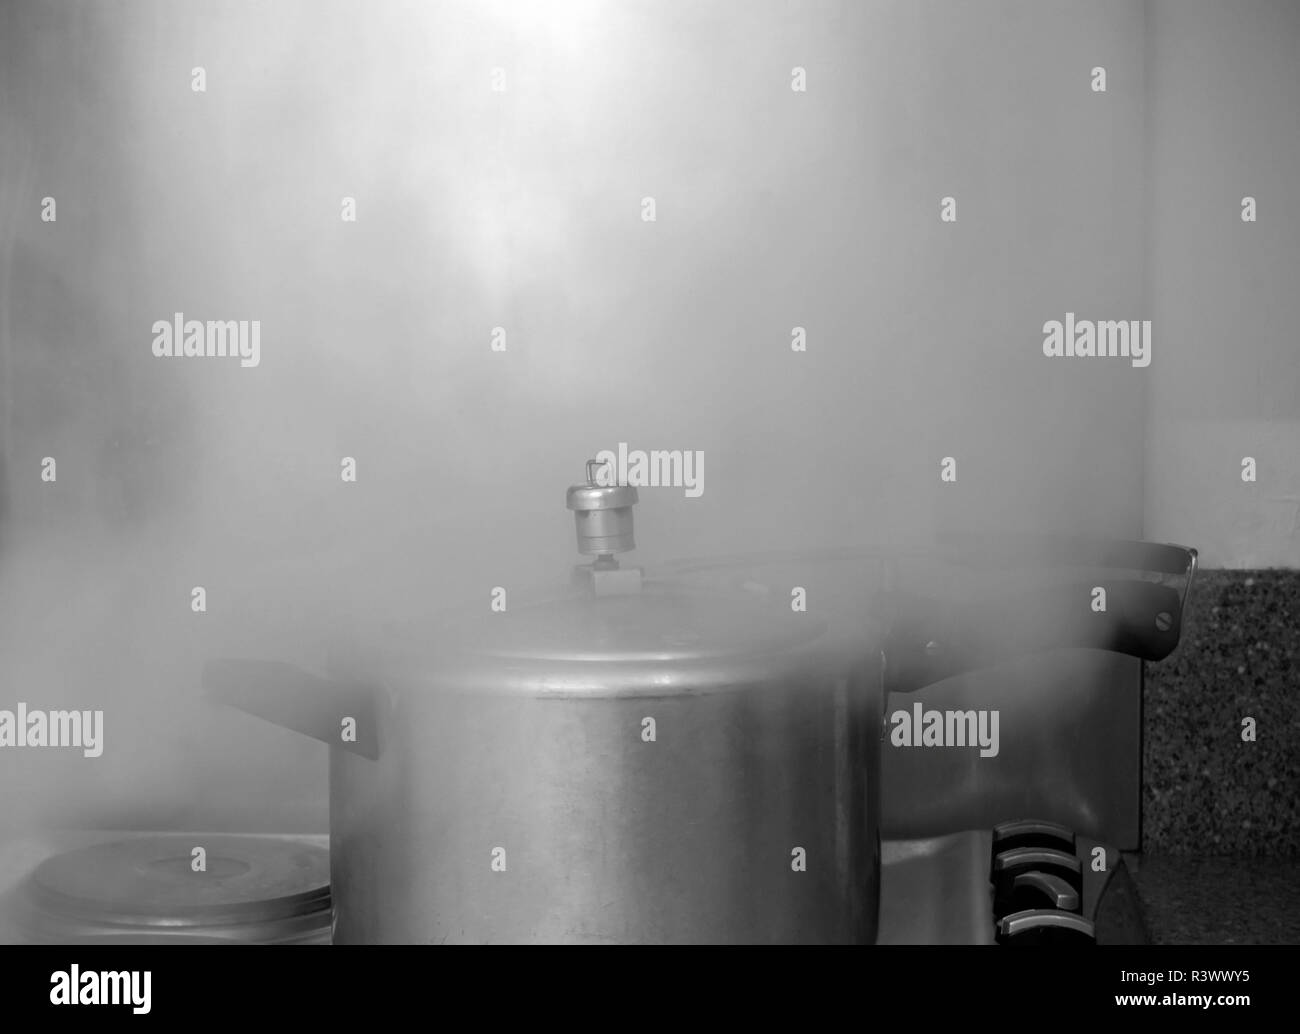 Pressure cooker on the stove releasing steam, black and white photography - Stock Image